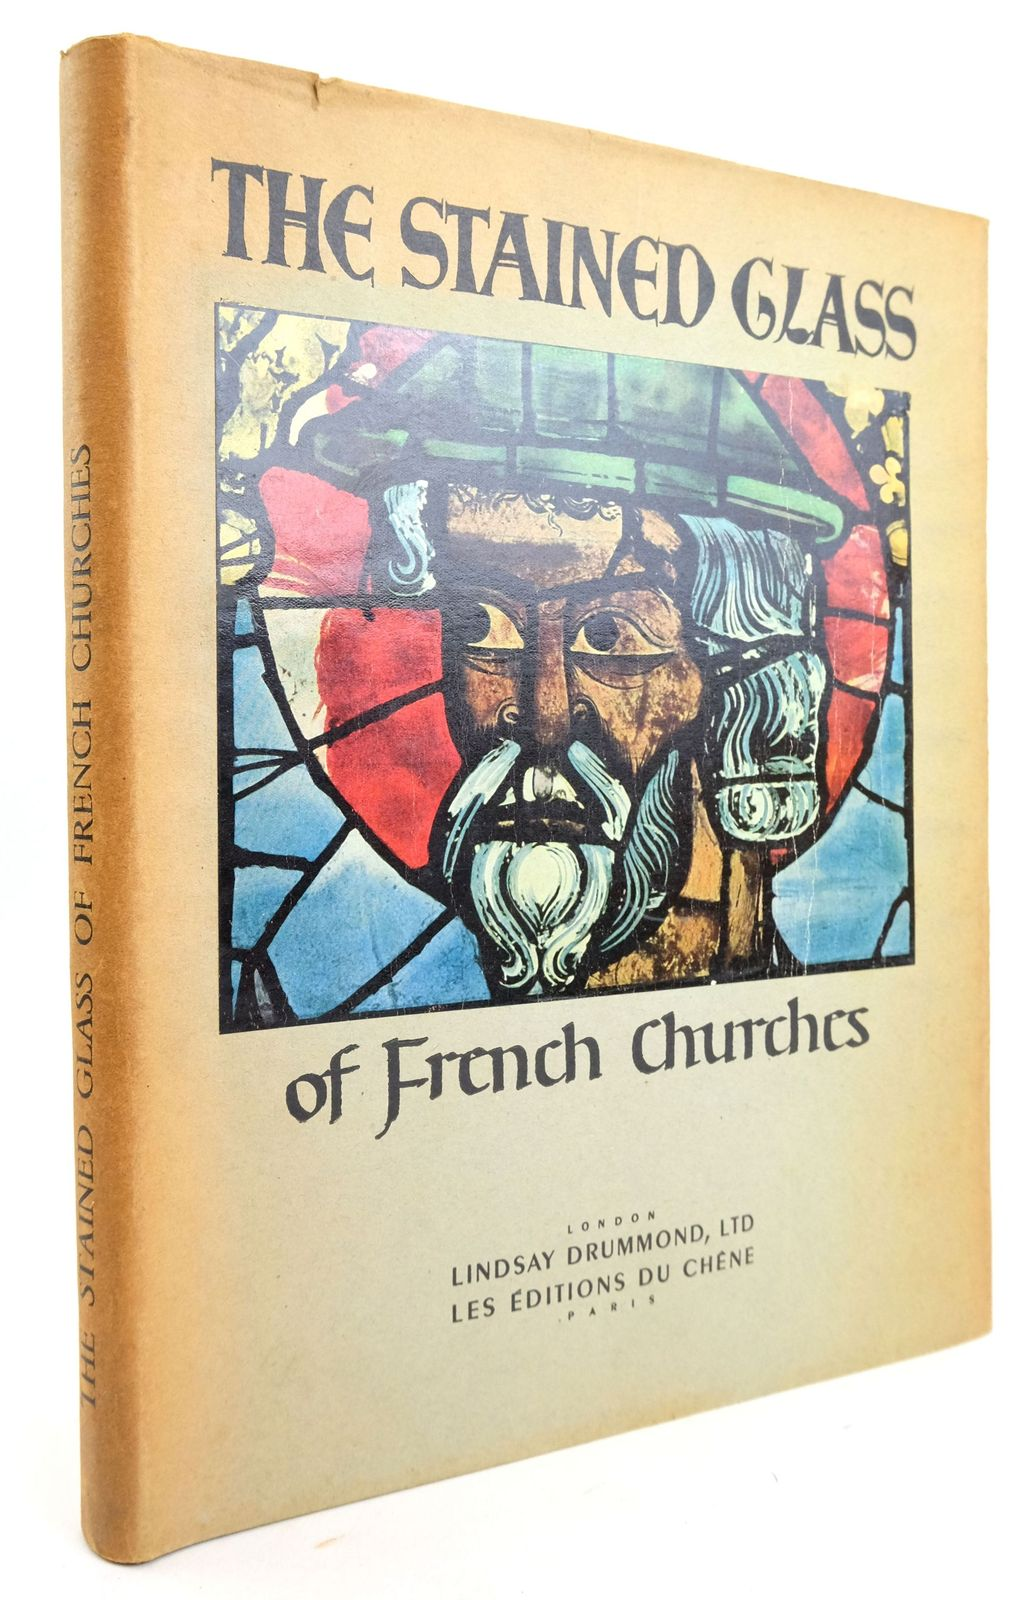 Photo of THE STAINED GLASS OF FRENCH CHURCHES- Stock Number: 1819860